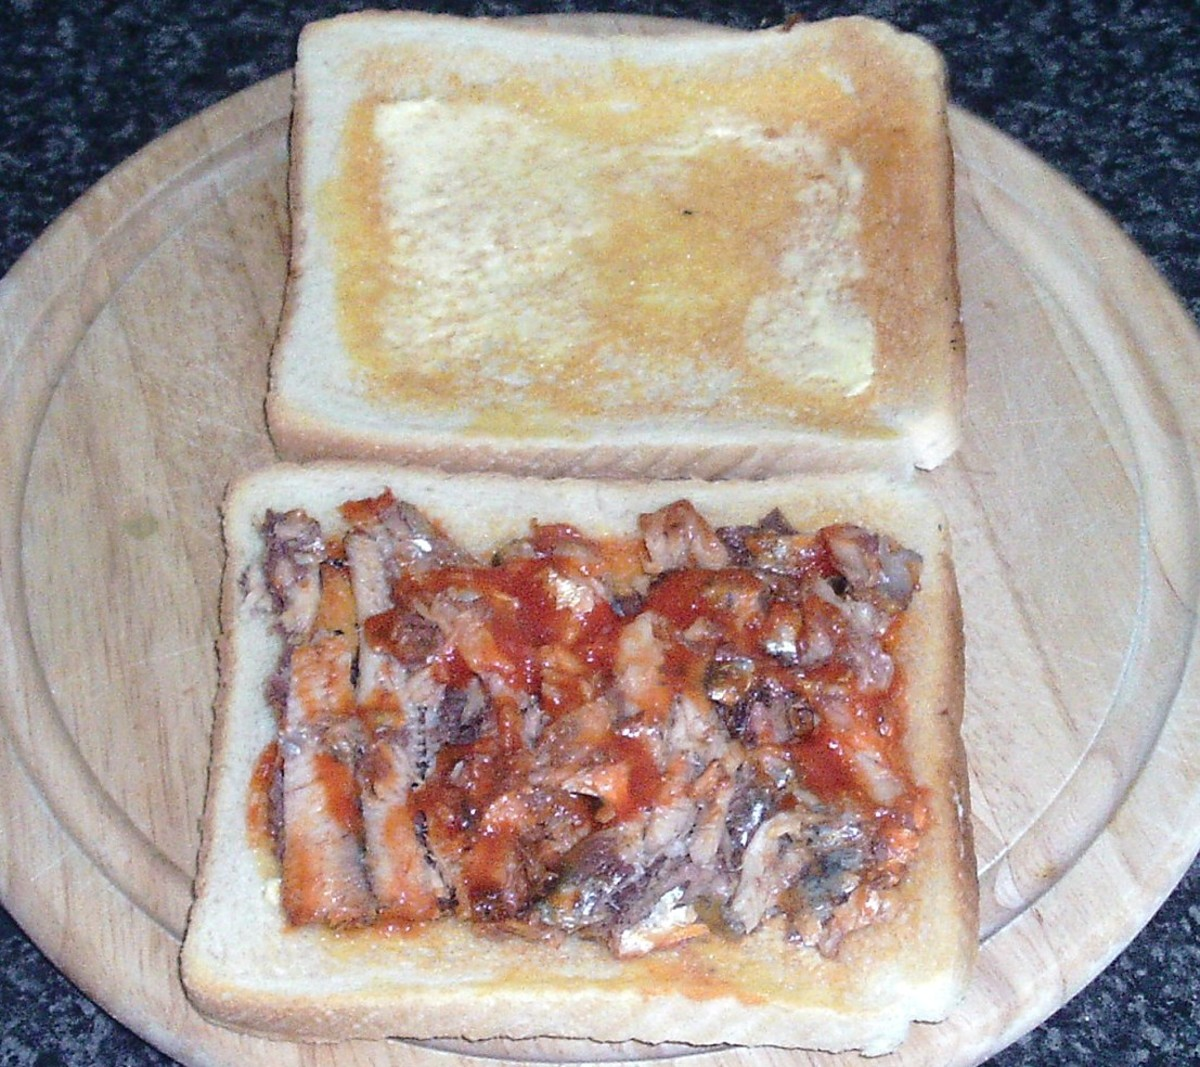 Sardines in tomato sauce are spread on toast